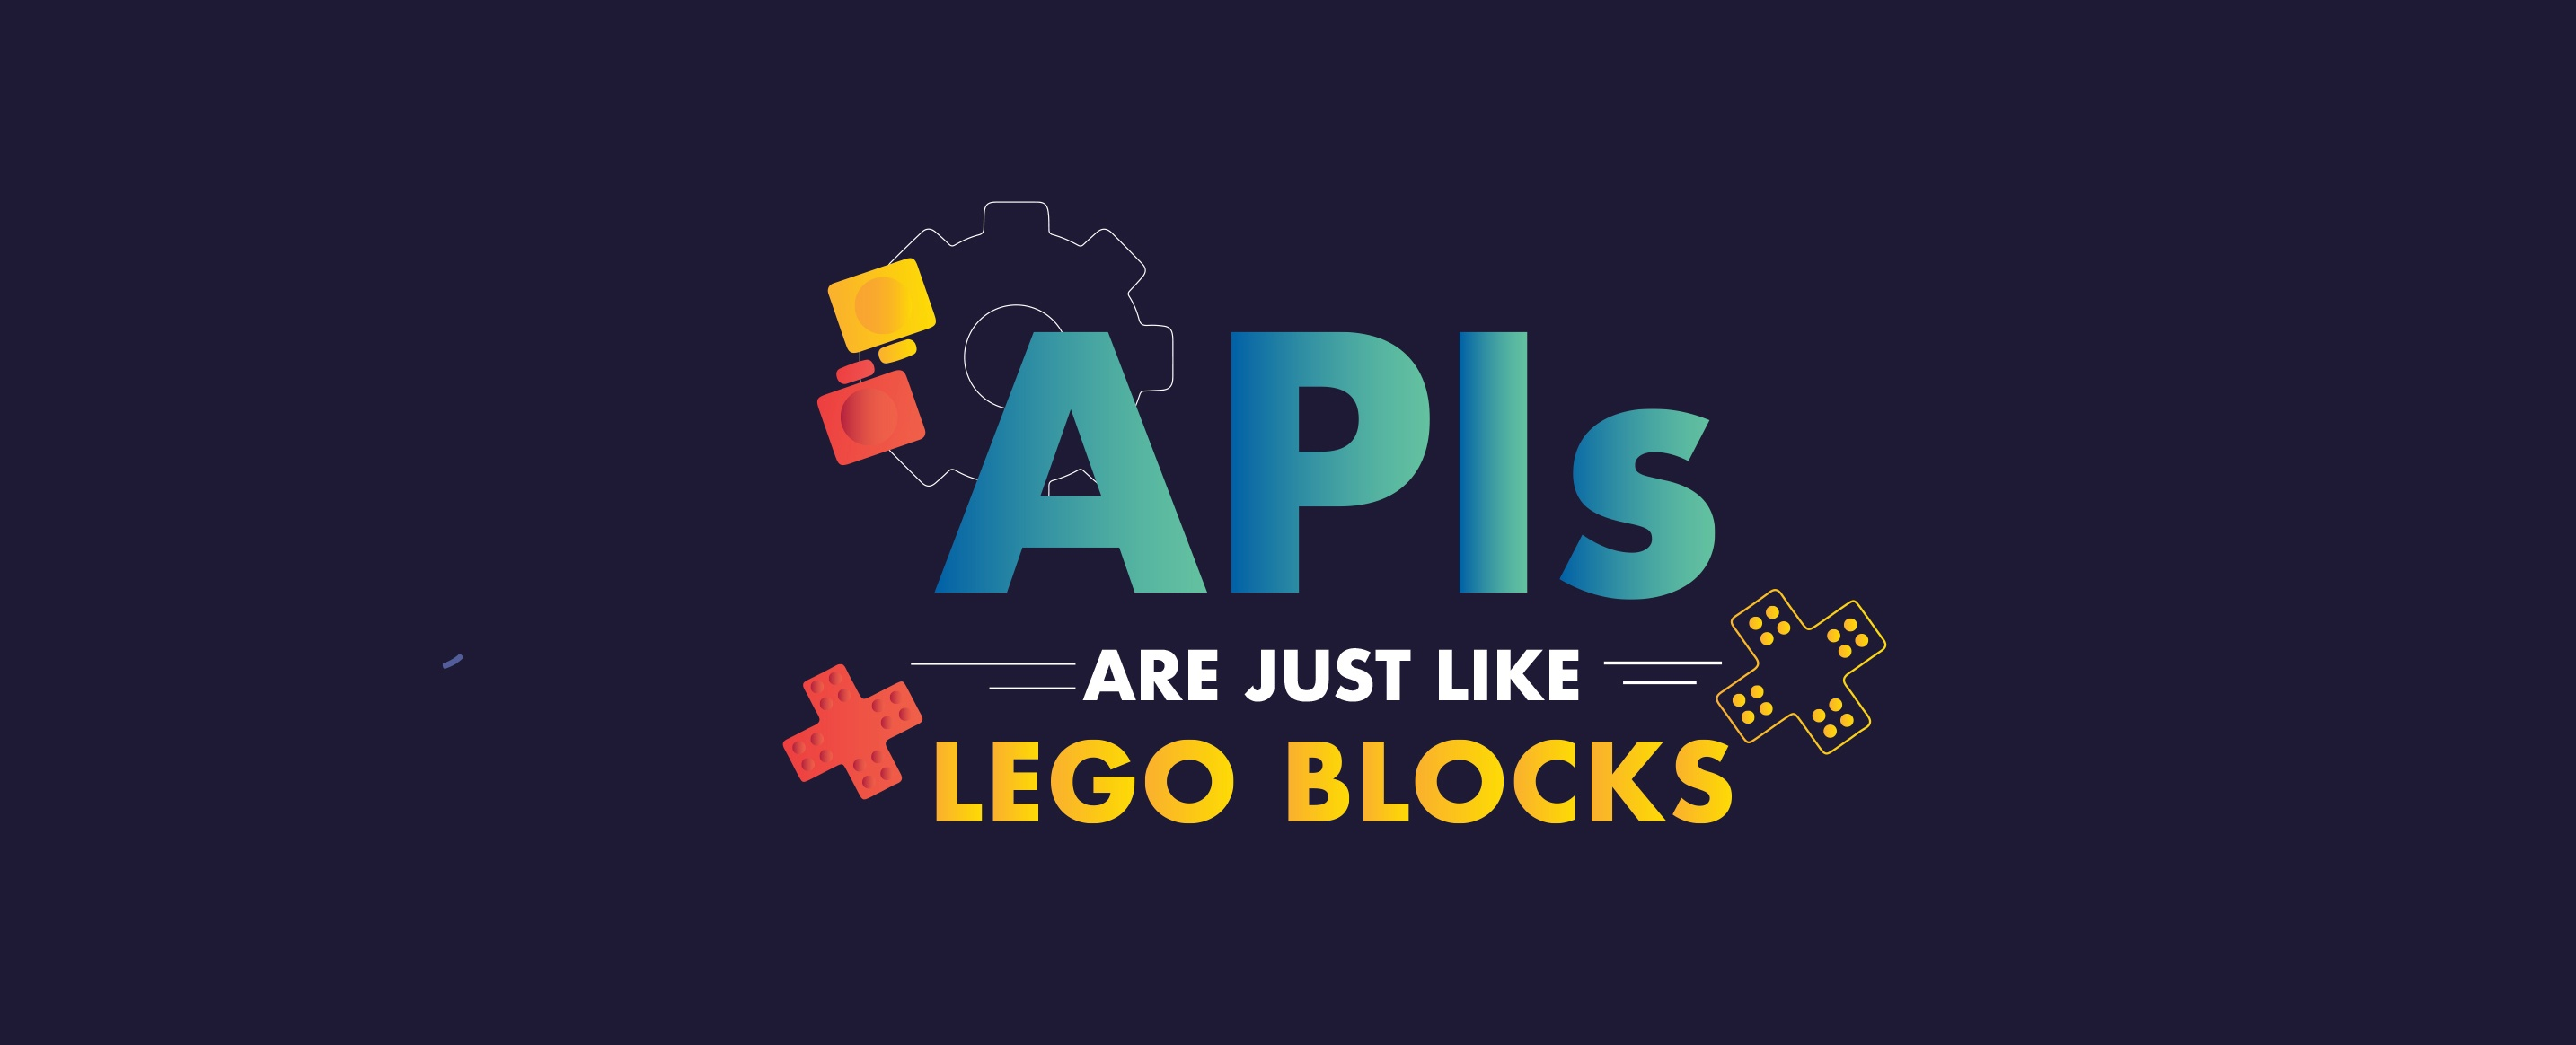 APIs-Are-Just-Like-LEGO-Blocks